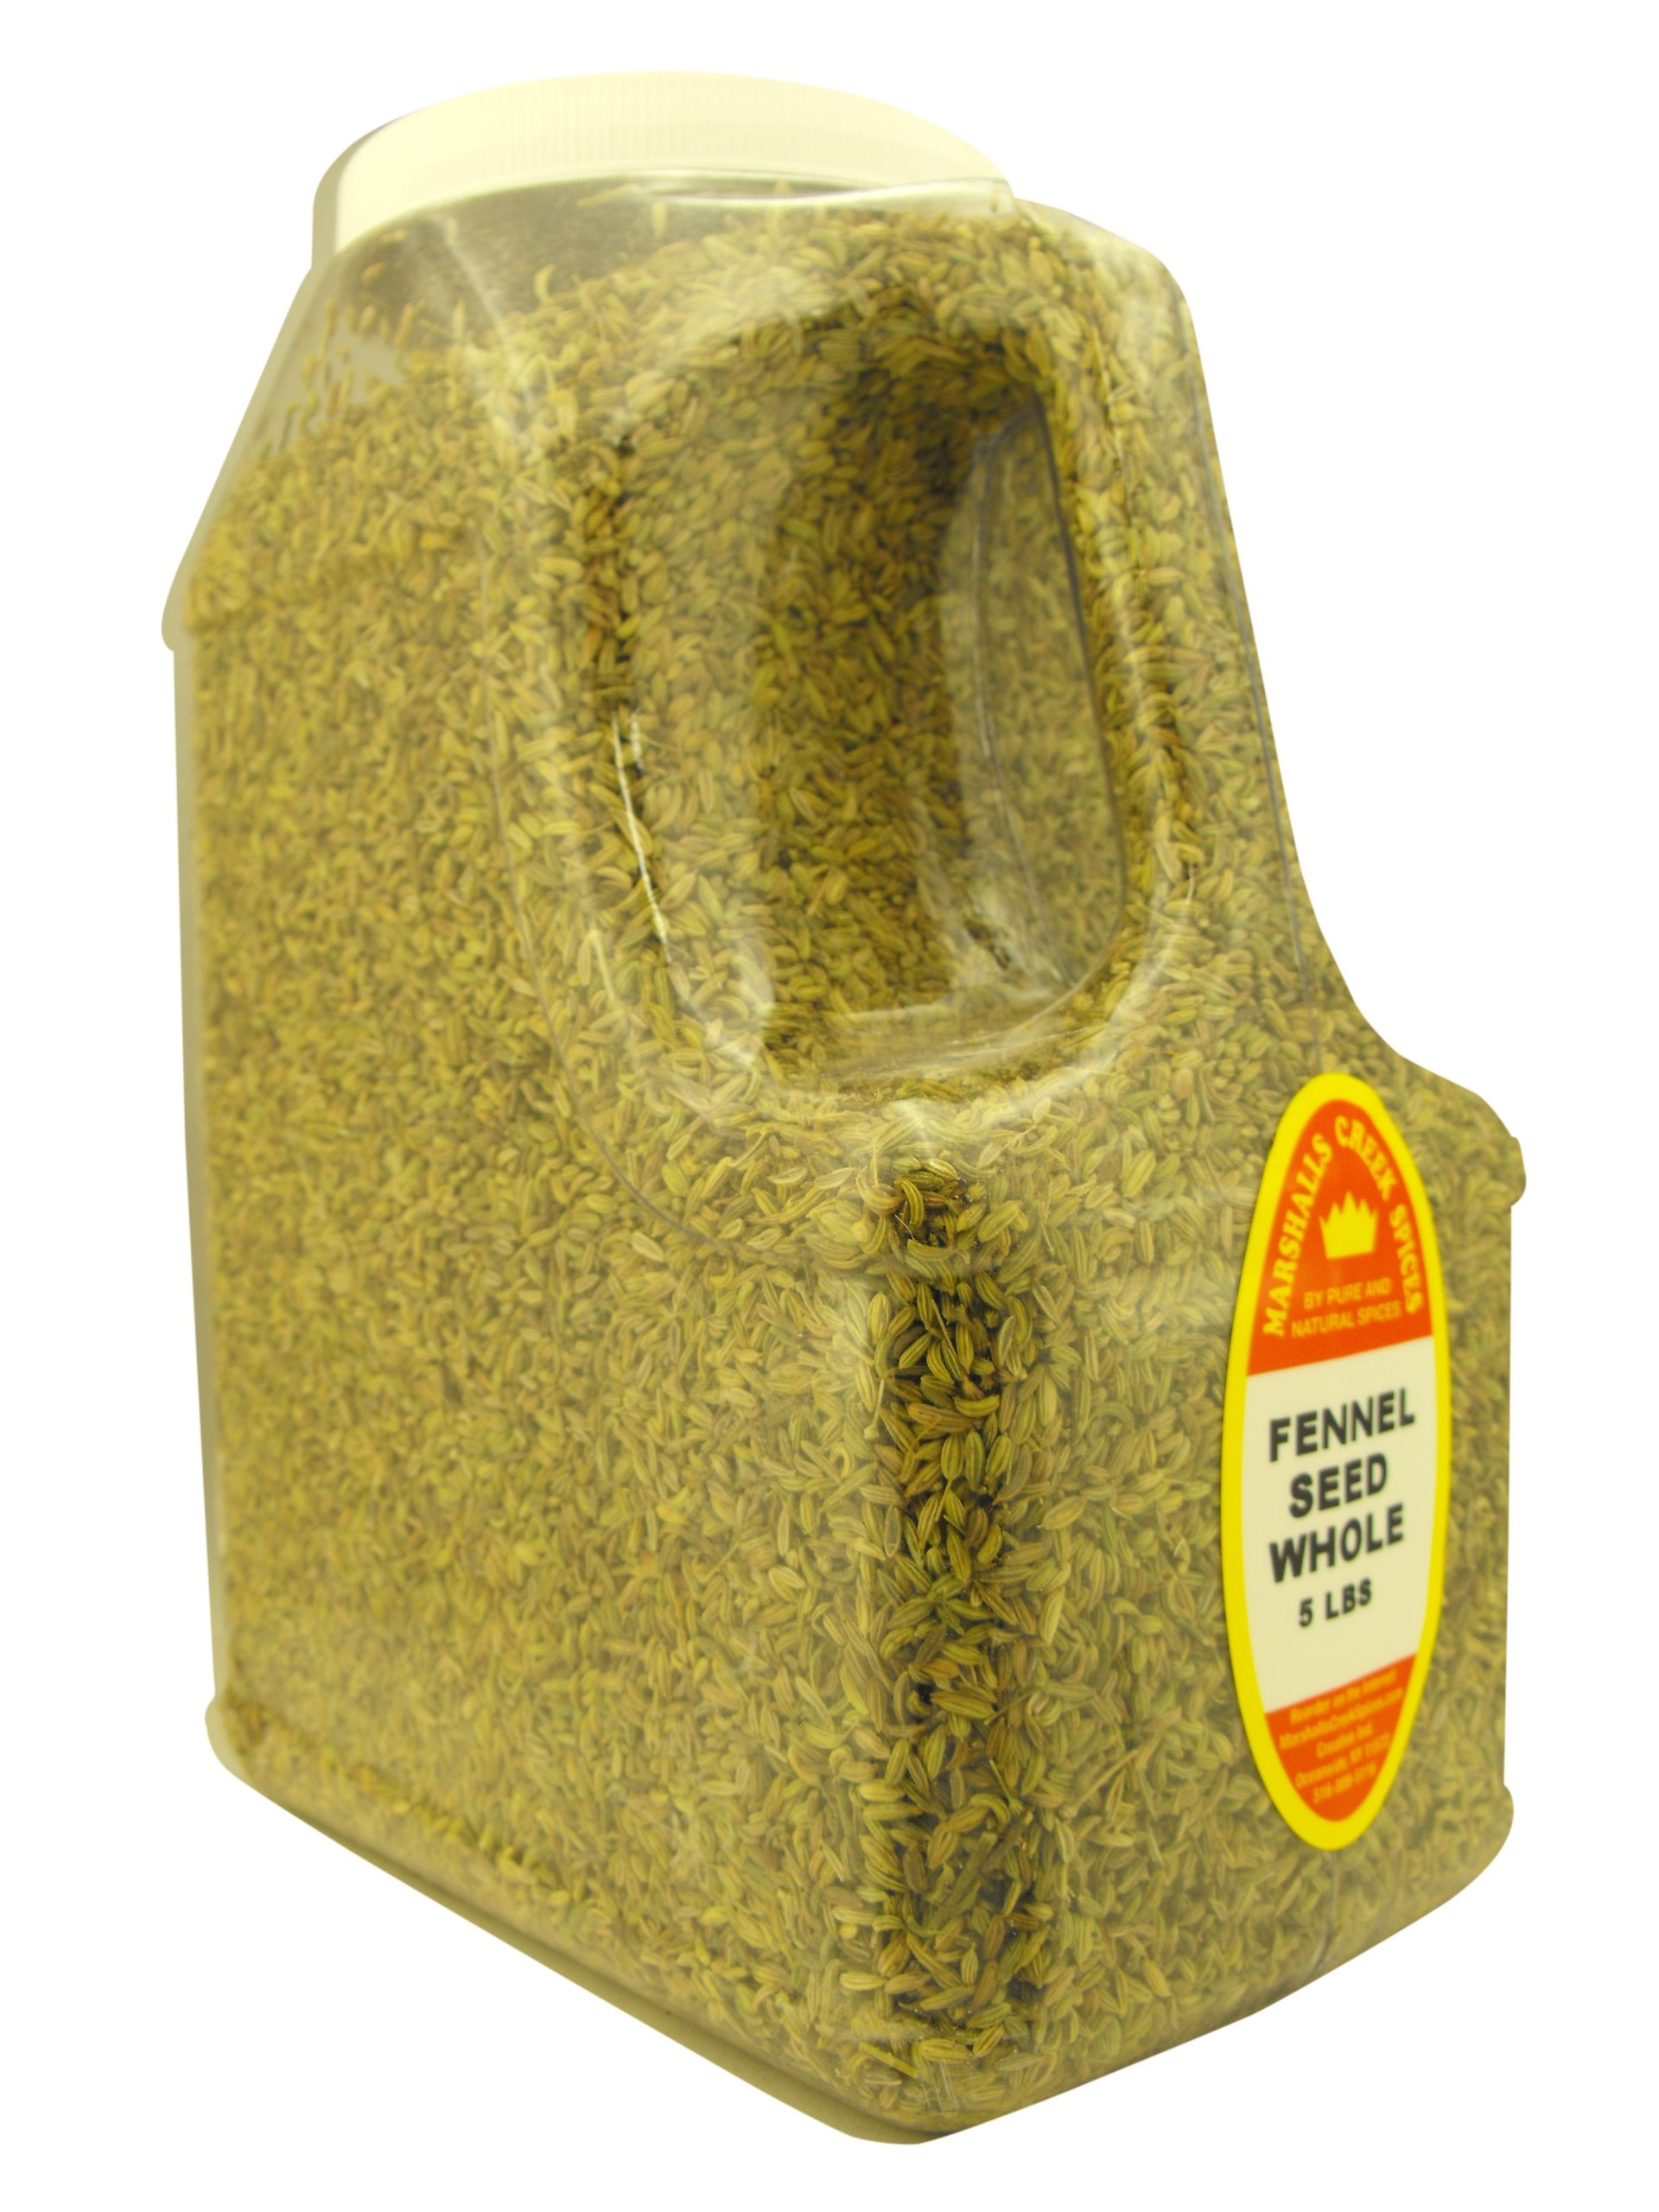 FENNEL SEED WHOLE 5 LB. RESTAURANT SIZE JUG